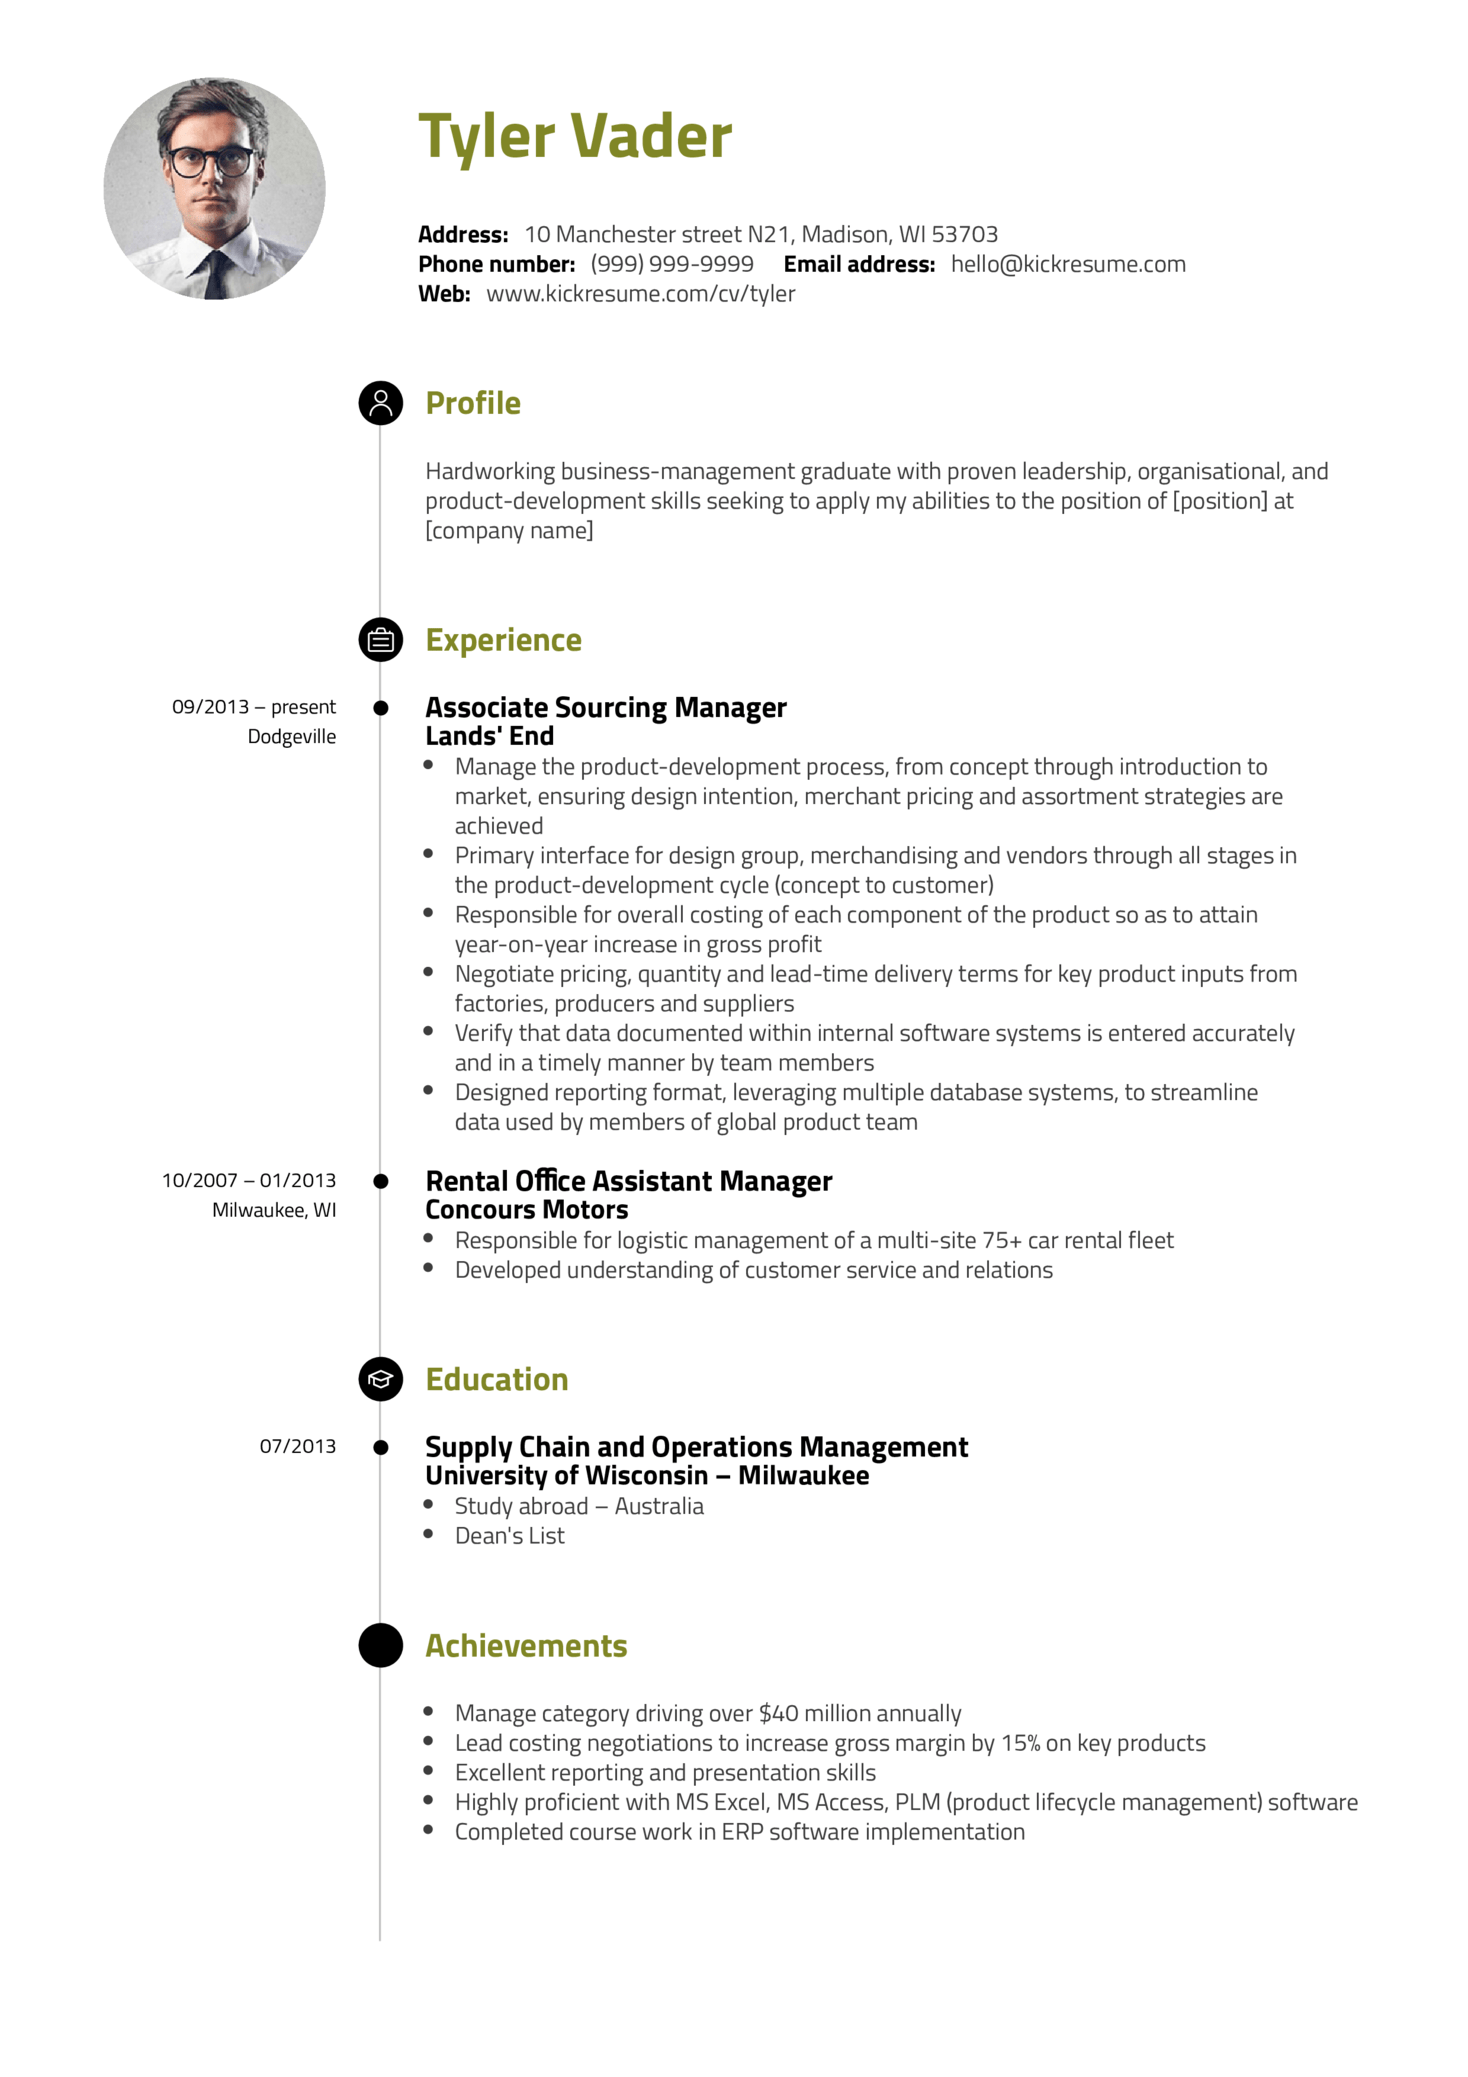 Resume Examples by Real People: Business-management graduate ...